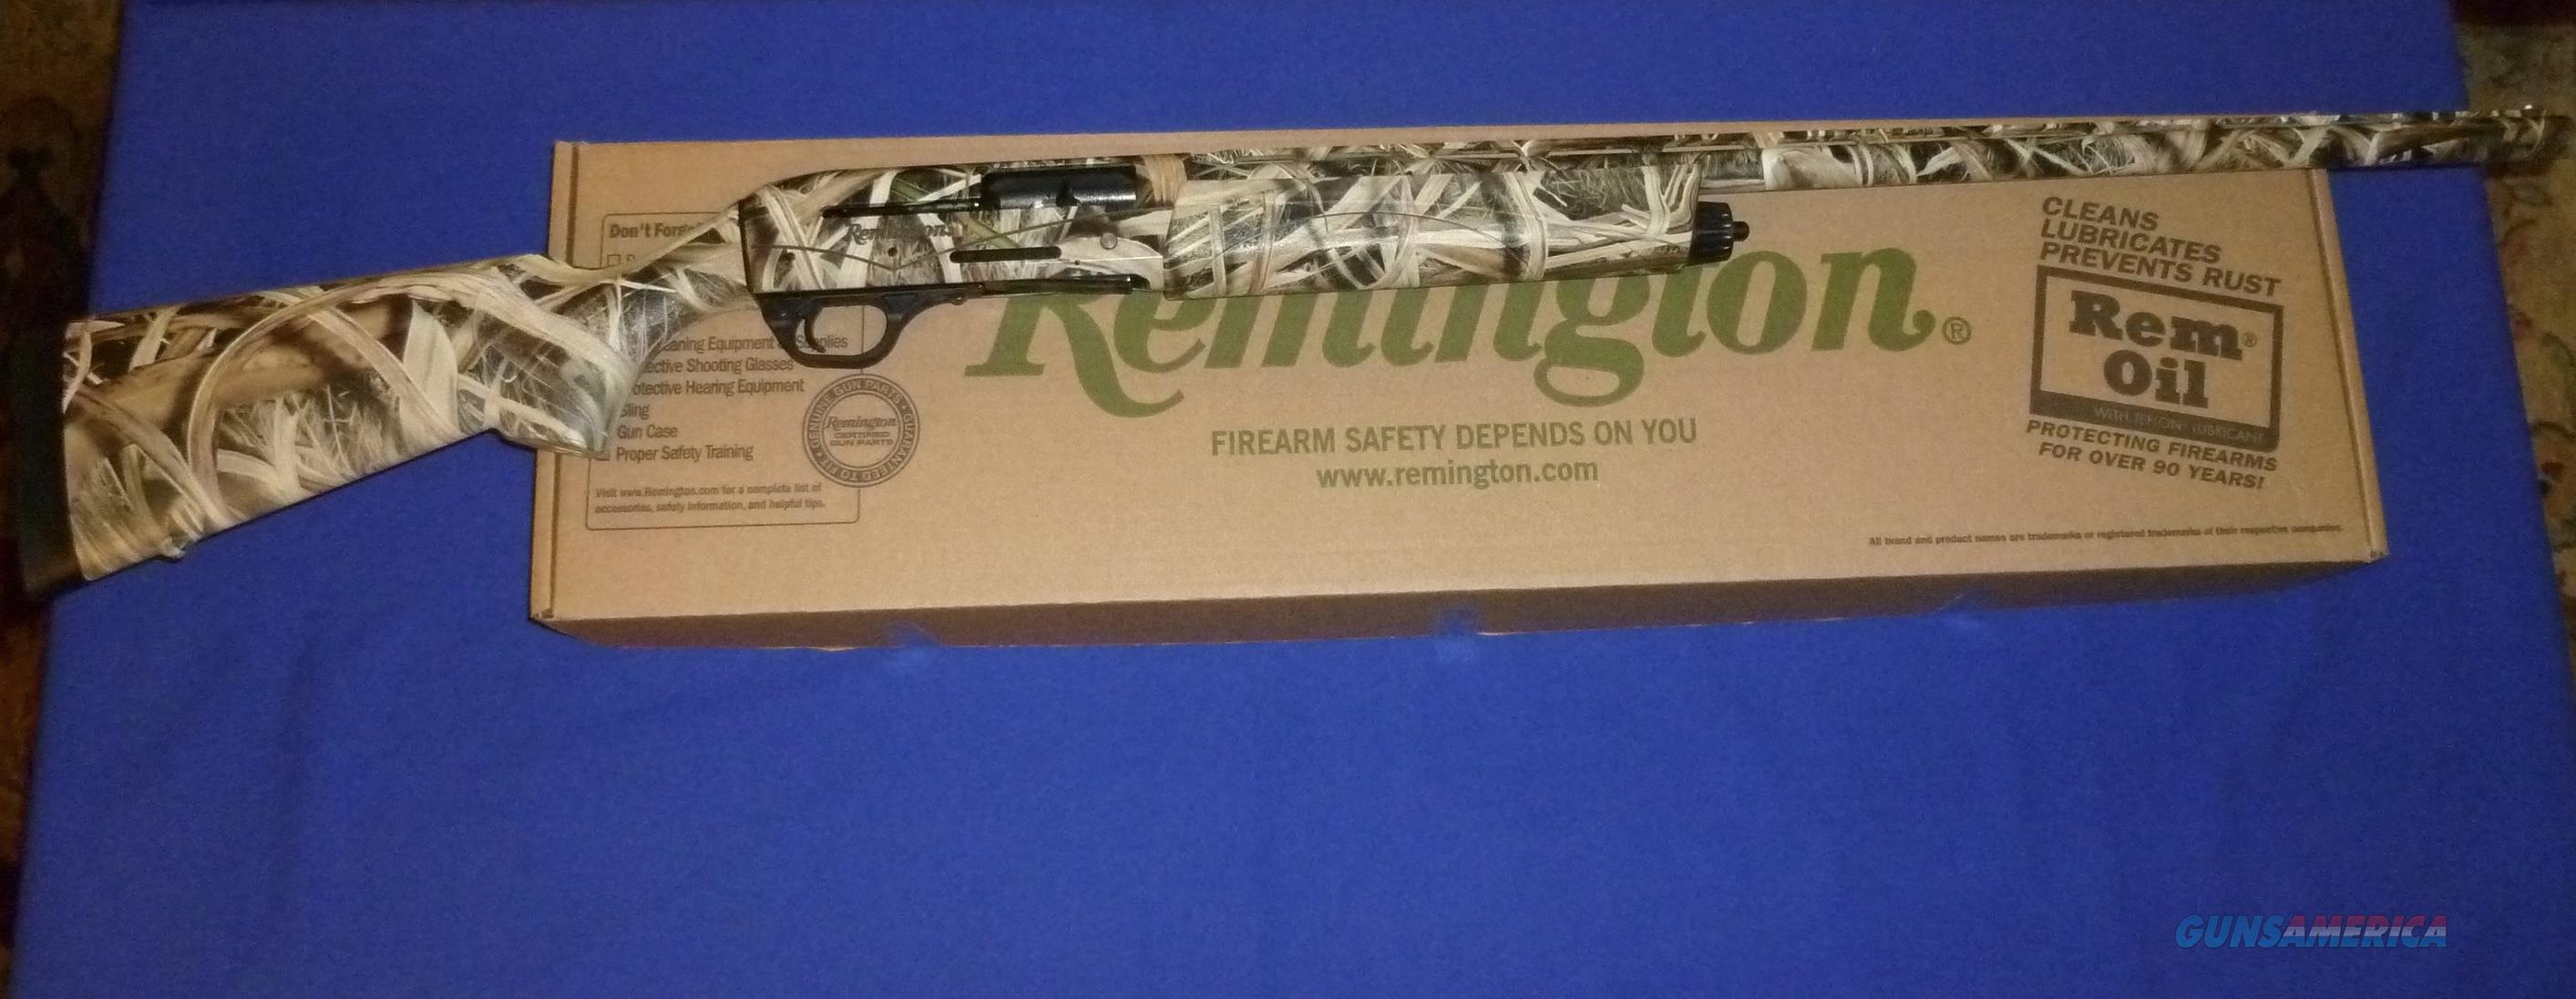 CLEARANCE PRICED!  REMINGTON V3 FIELD SPORT MOSSY OAK BLADES CAMO 12 GAUGE SEMI-AUTO SHOTGUN  Guns > Shotguns > Remington Shotguns  > Autoloaders > Hunting